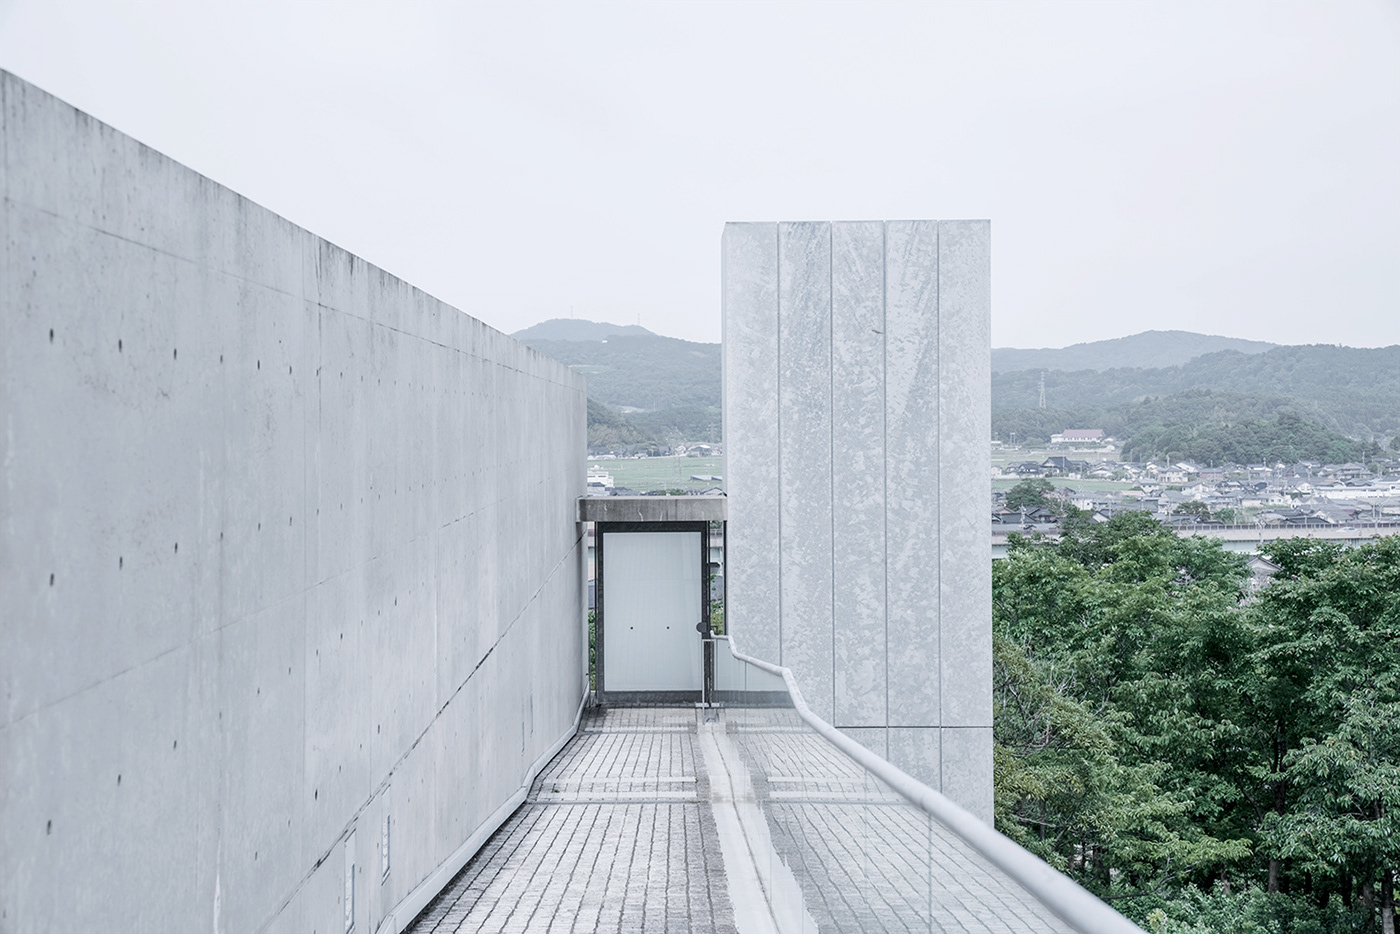 architecture japan Photography